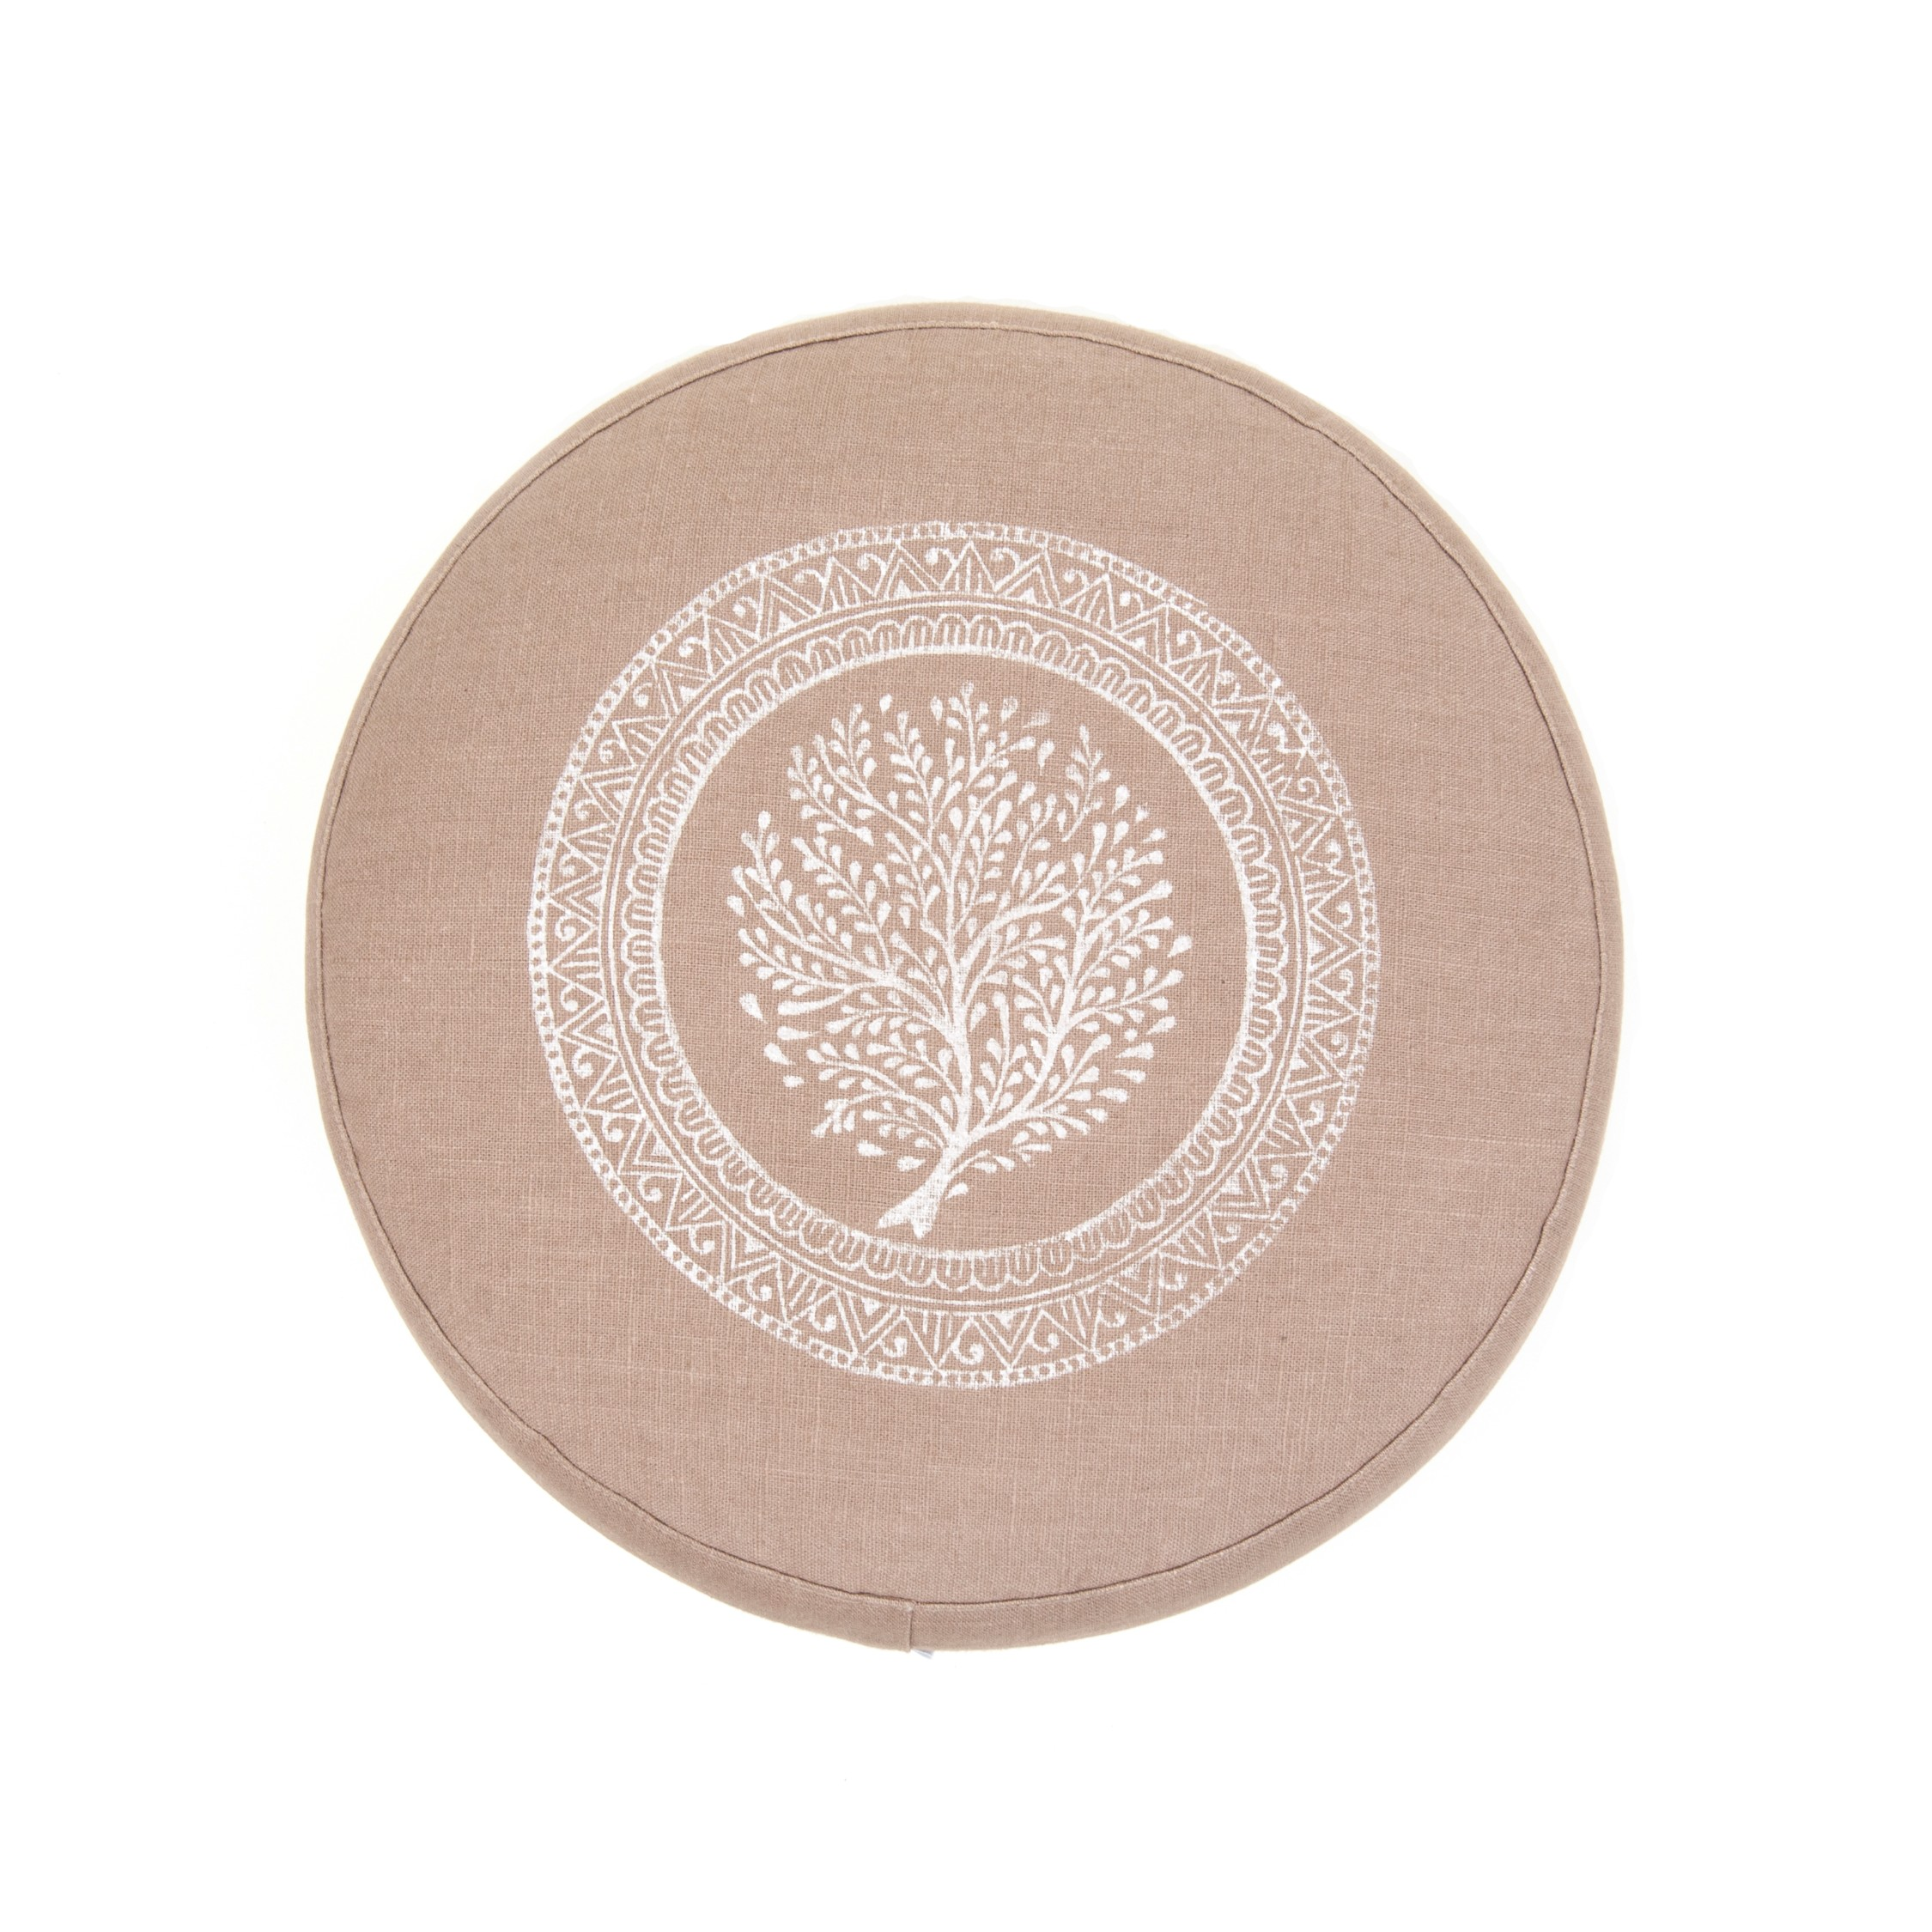 LIght brown Tree of Life meditation cushion by Pure Prana Label